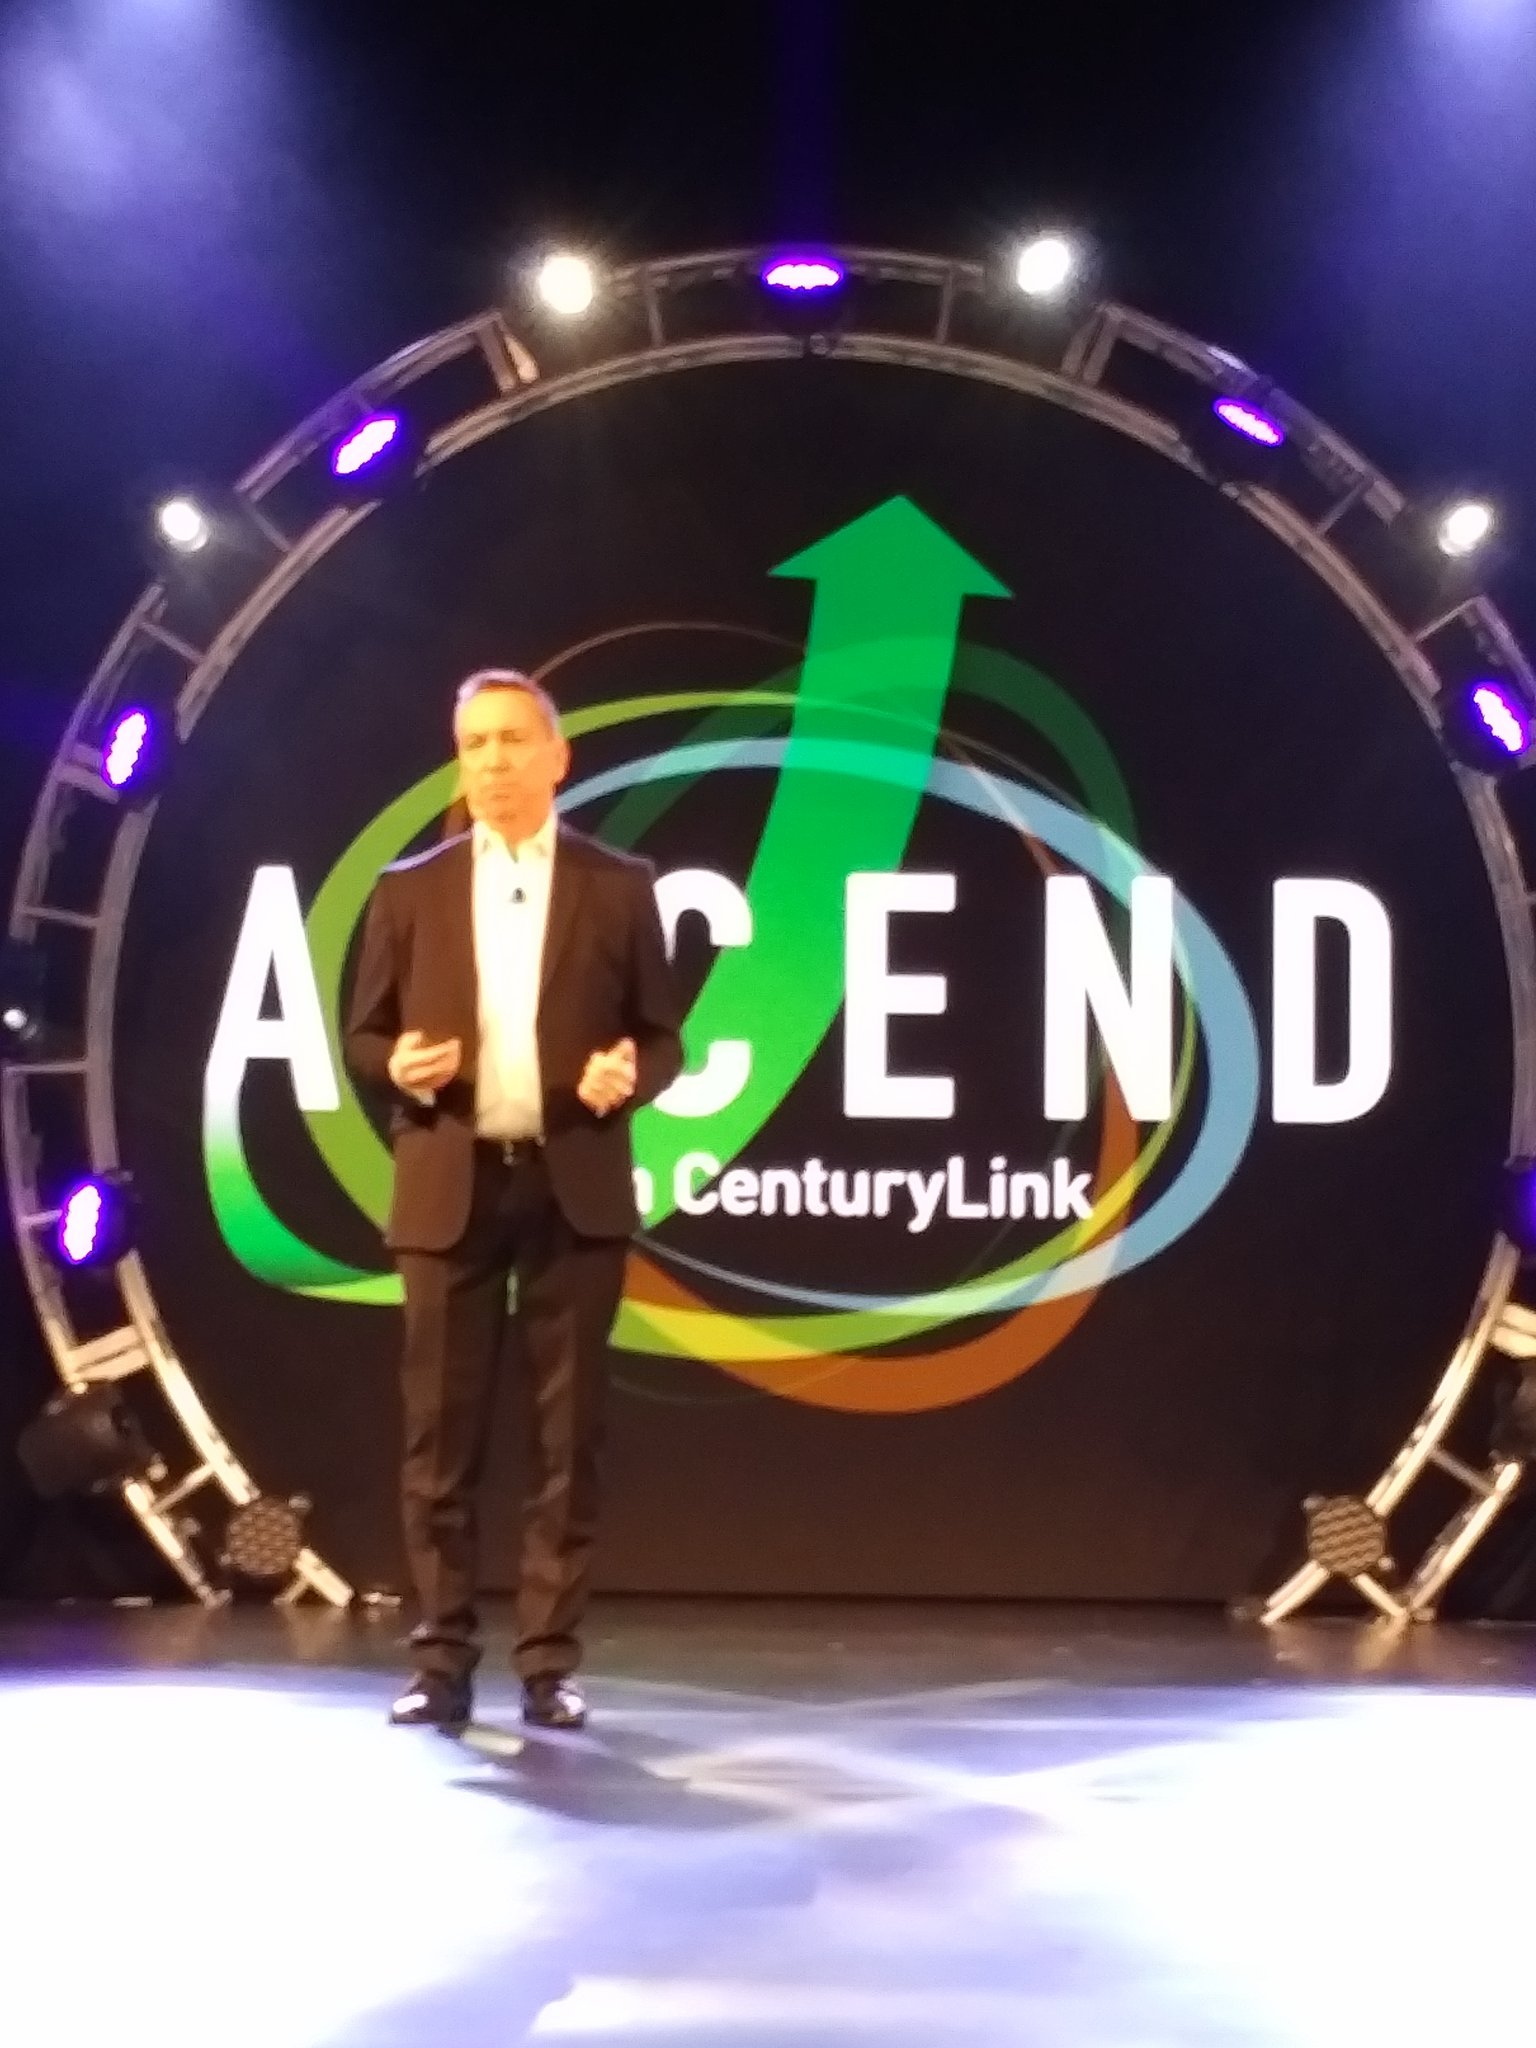 Corbin - We want velocity with our partners - to monetize faster and more #CenturyLinkAscend https://t.co/DJ2TzcKswG